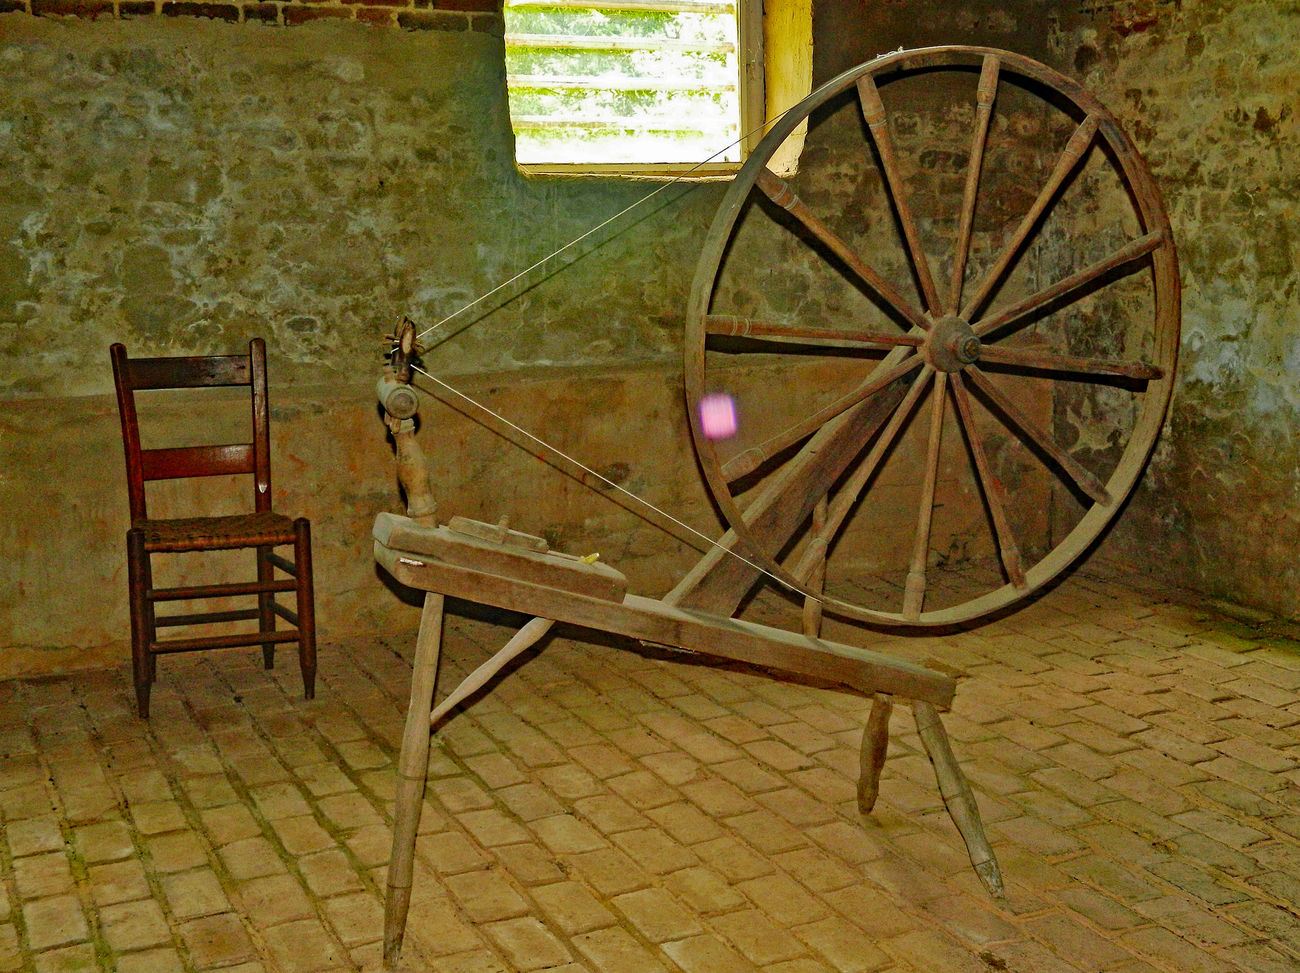 historical wheel loom in home of Patrick henry Absence Arrangement Chair Close Up Colonial Day Empty Furniture Historical Home House No People Old Old Buildings Parick Henry Seat Still Life Tourism Wheel Wood - Material Wooden